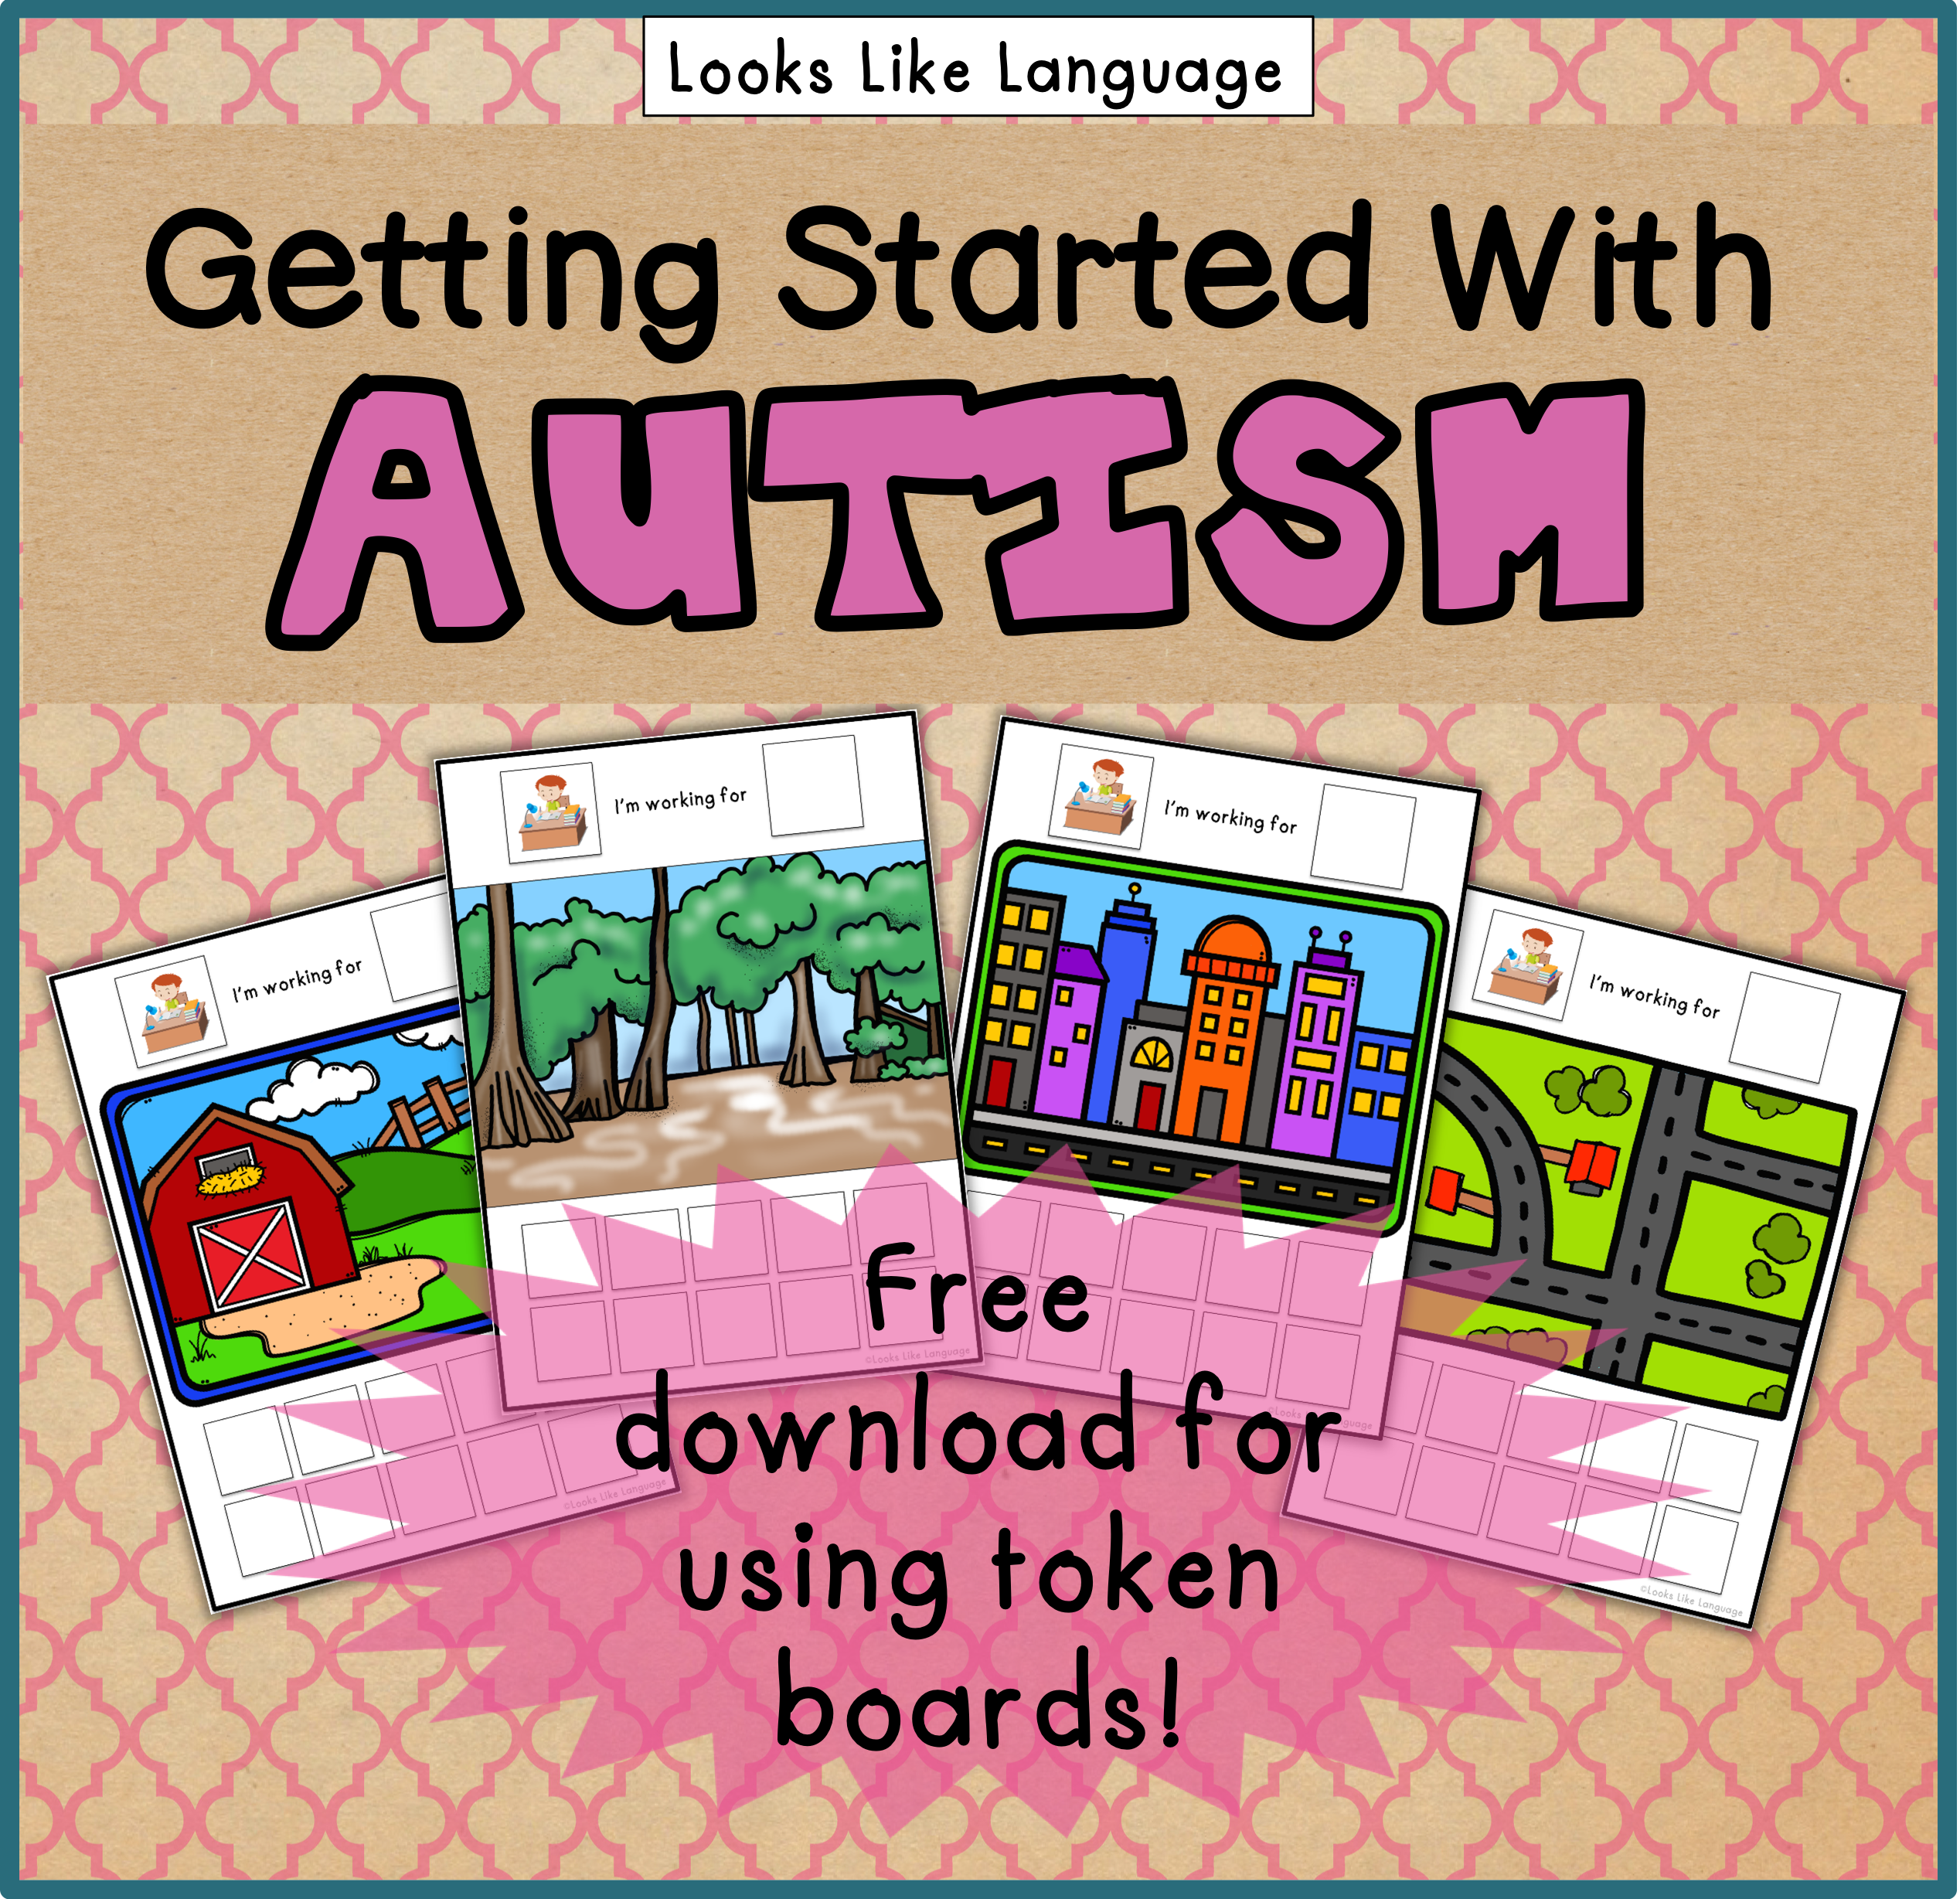 A free guide to get you started with Autism from Looks Like Language!